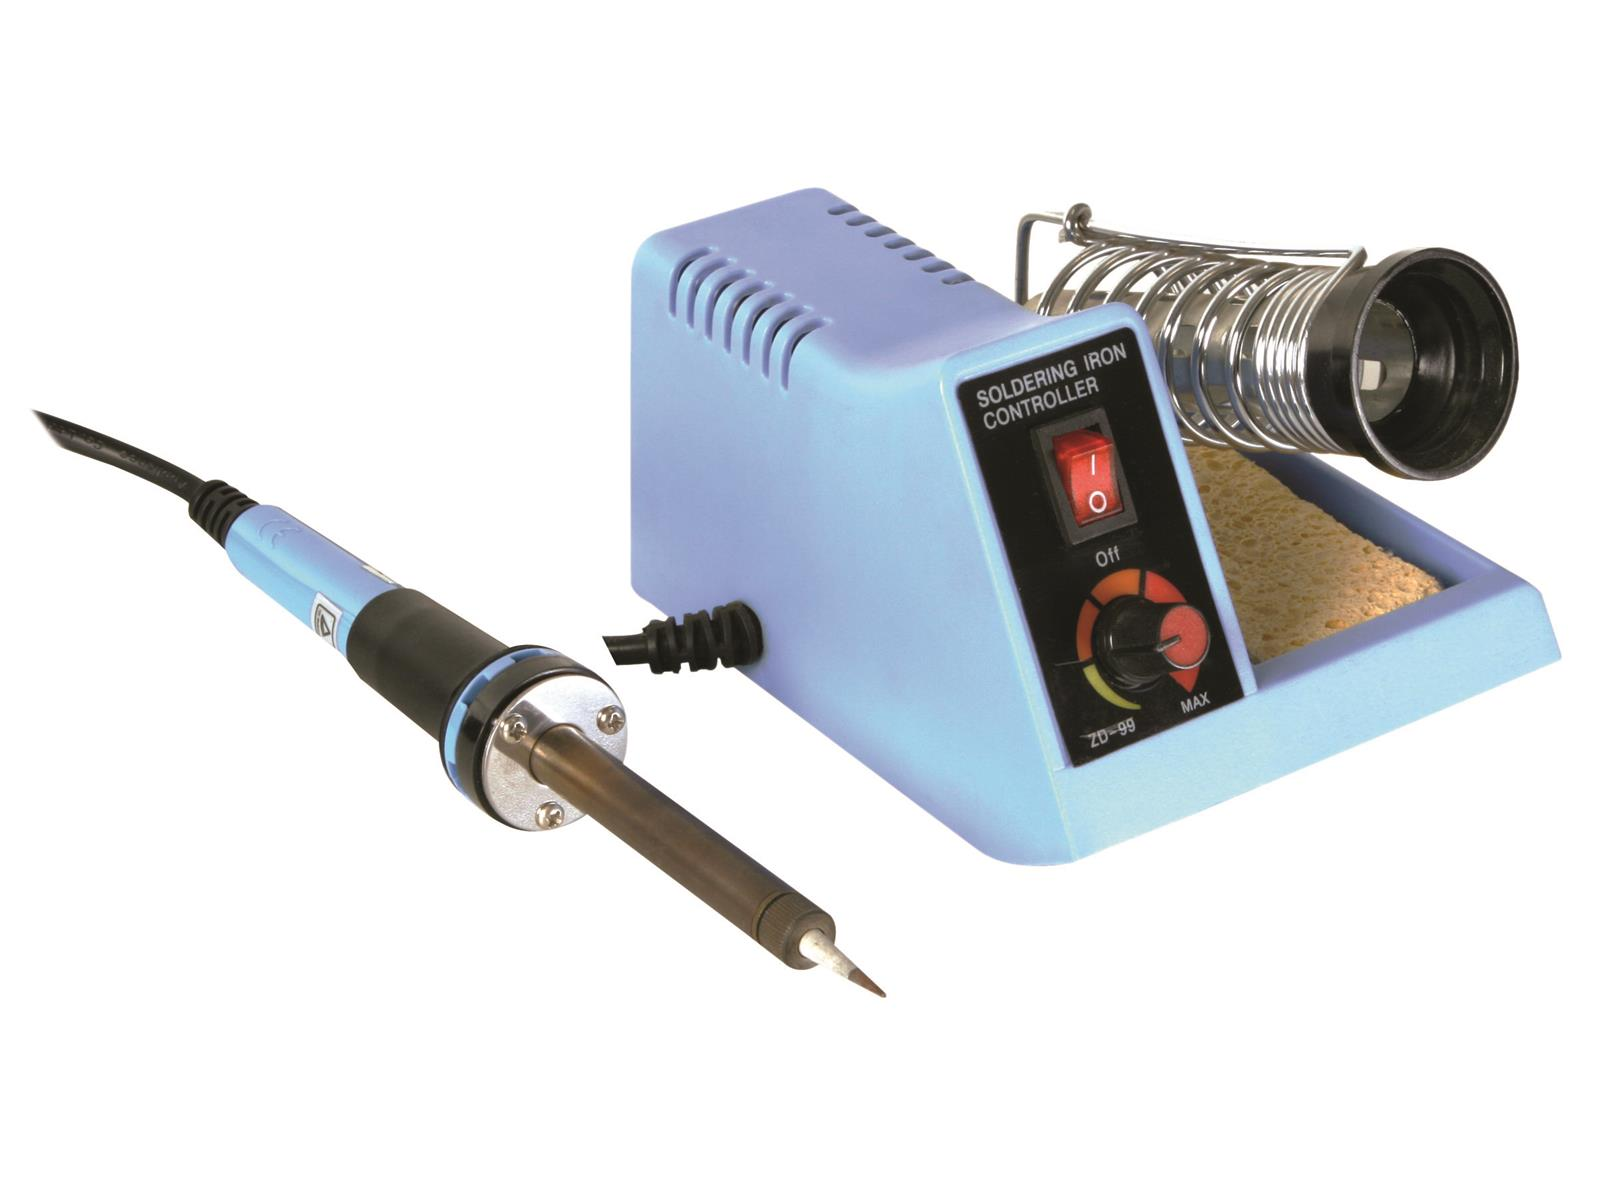 Whats The Best Soldering Iron For Small Electronics Slant Weller Wlc 100 Temperature Controlled Station